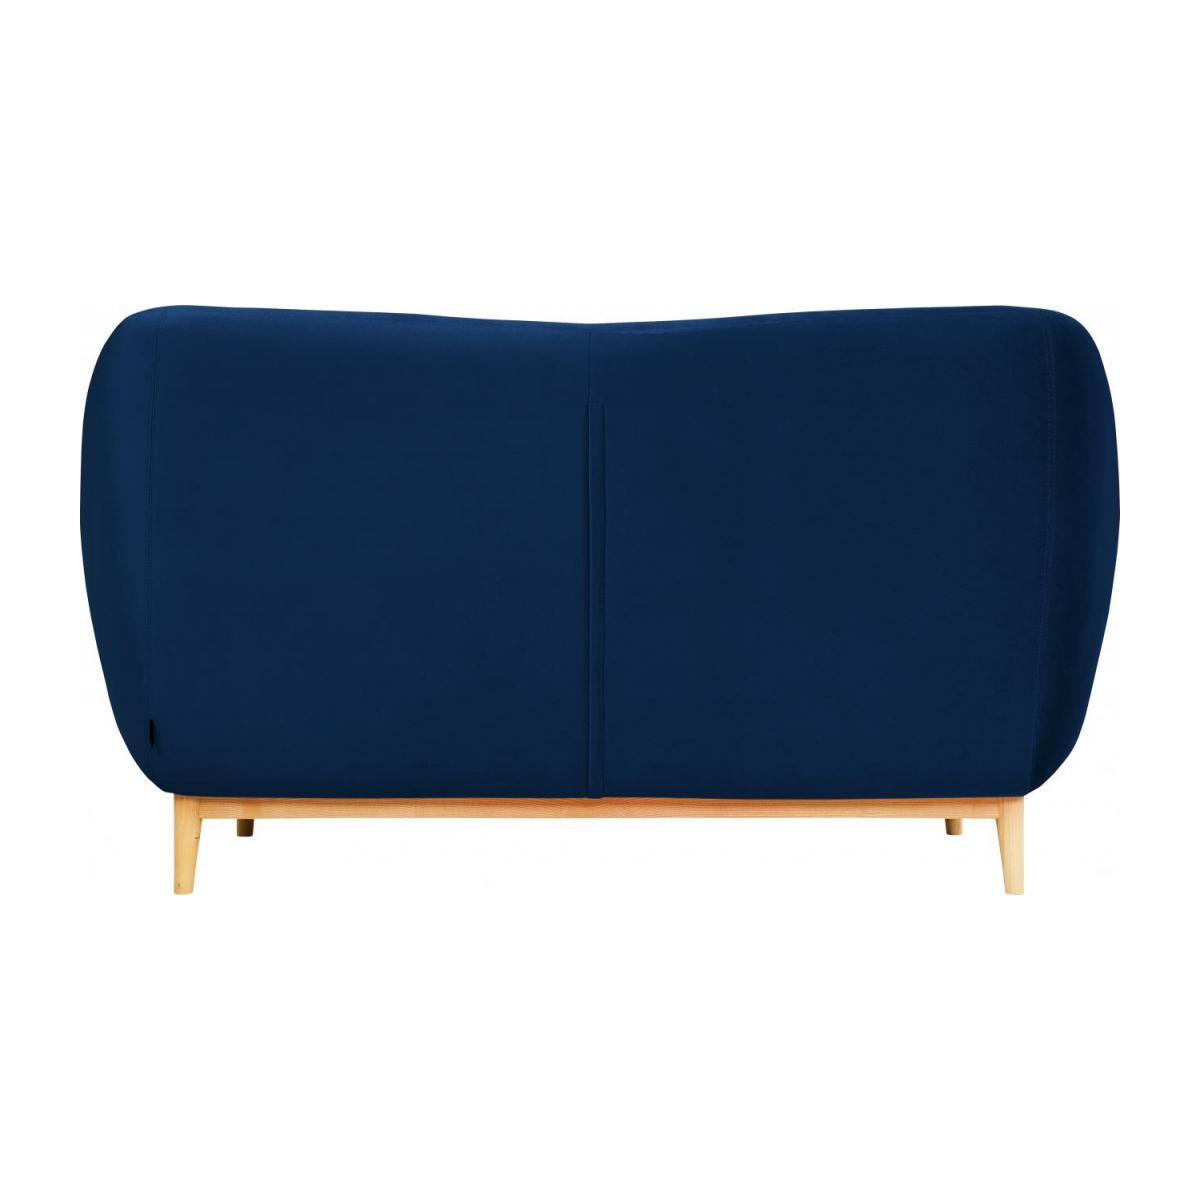 2-seat sofa made of velvet, blue n°3